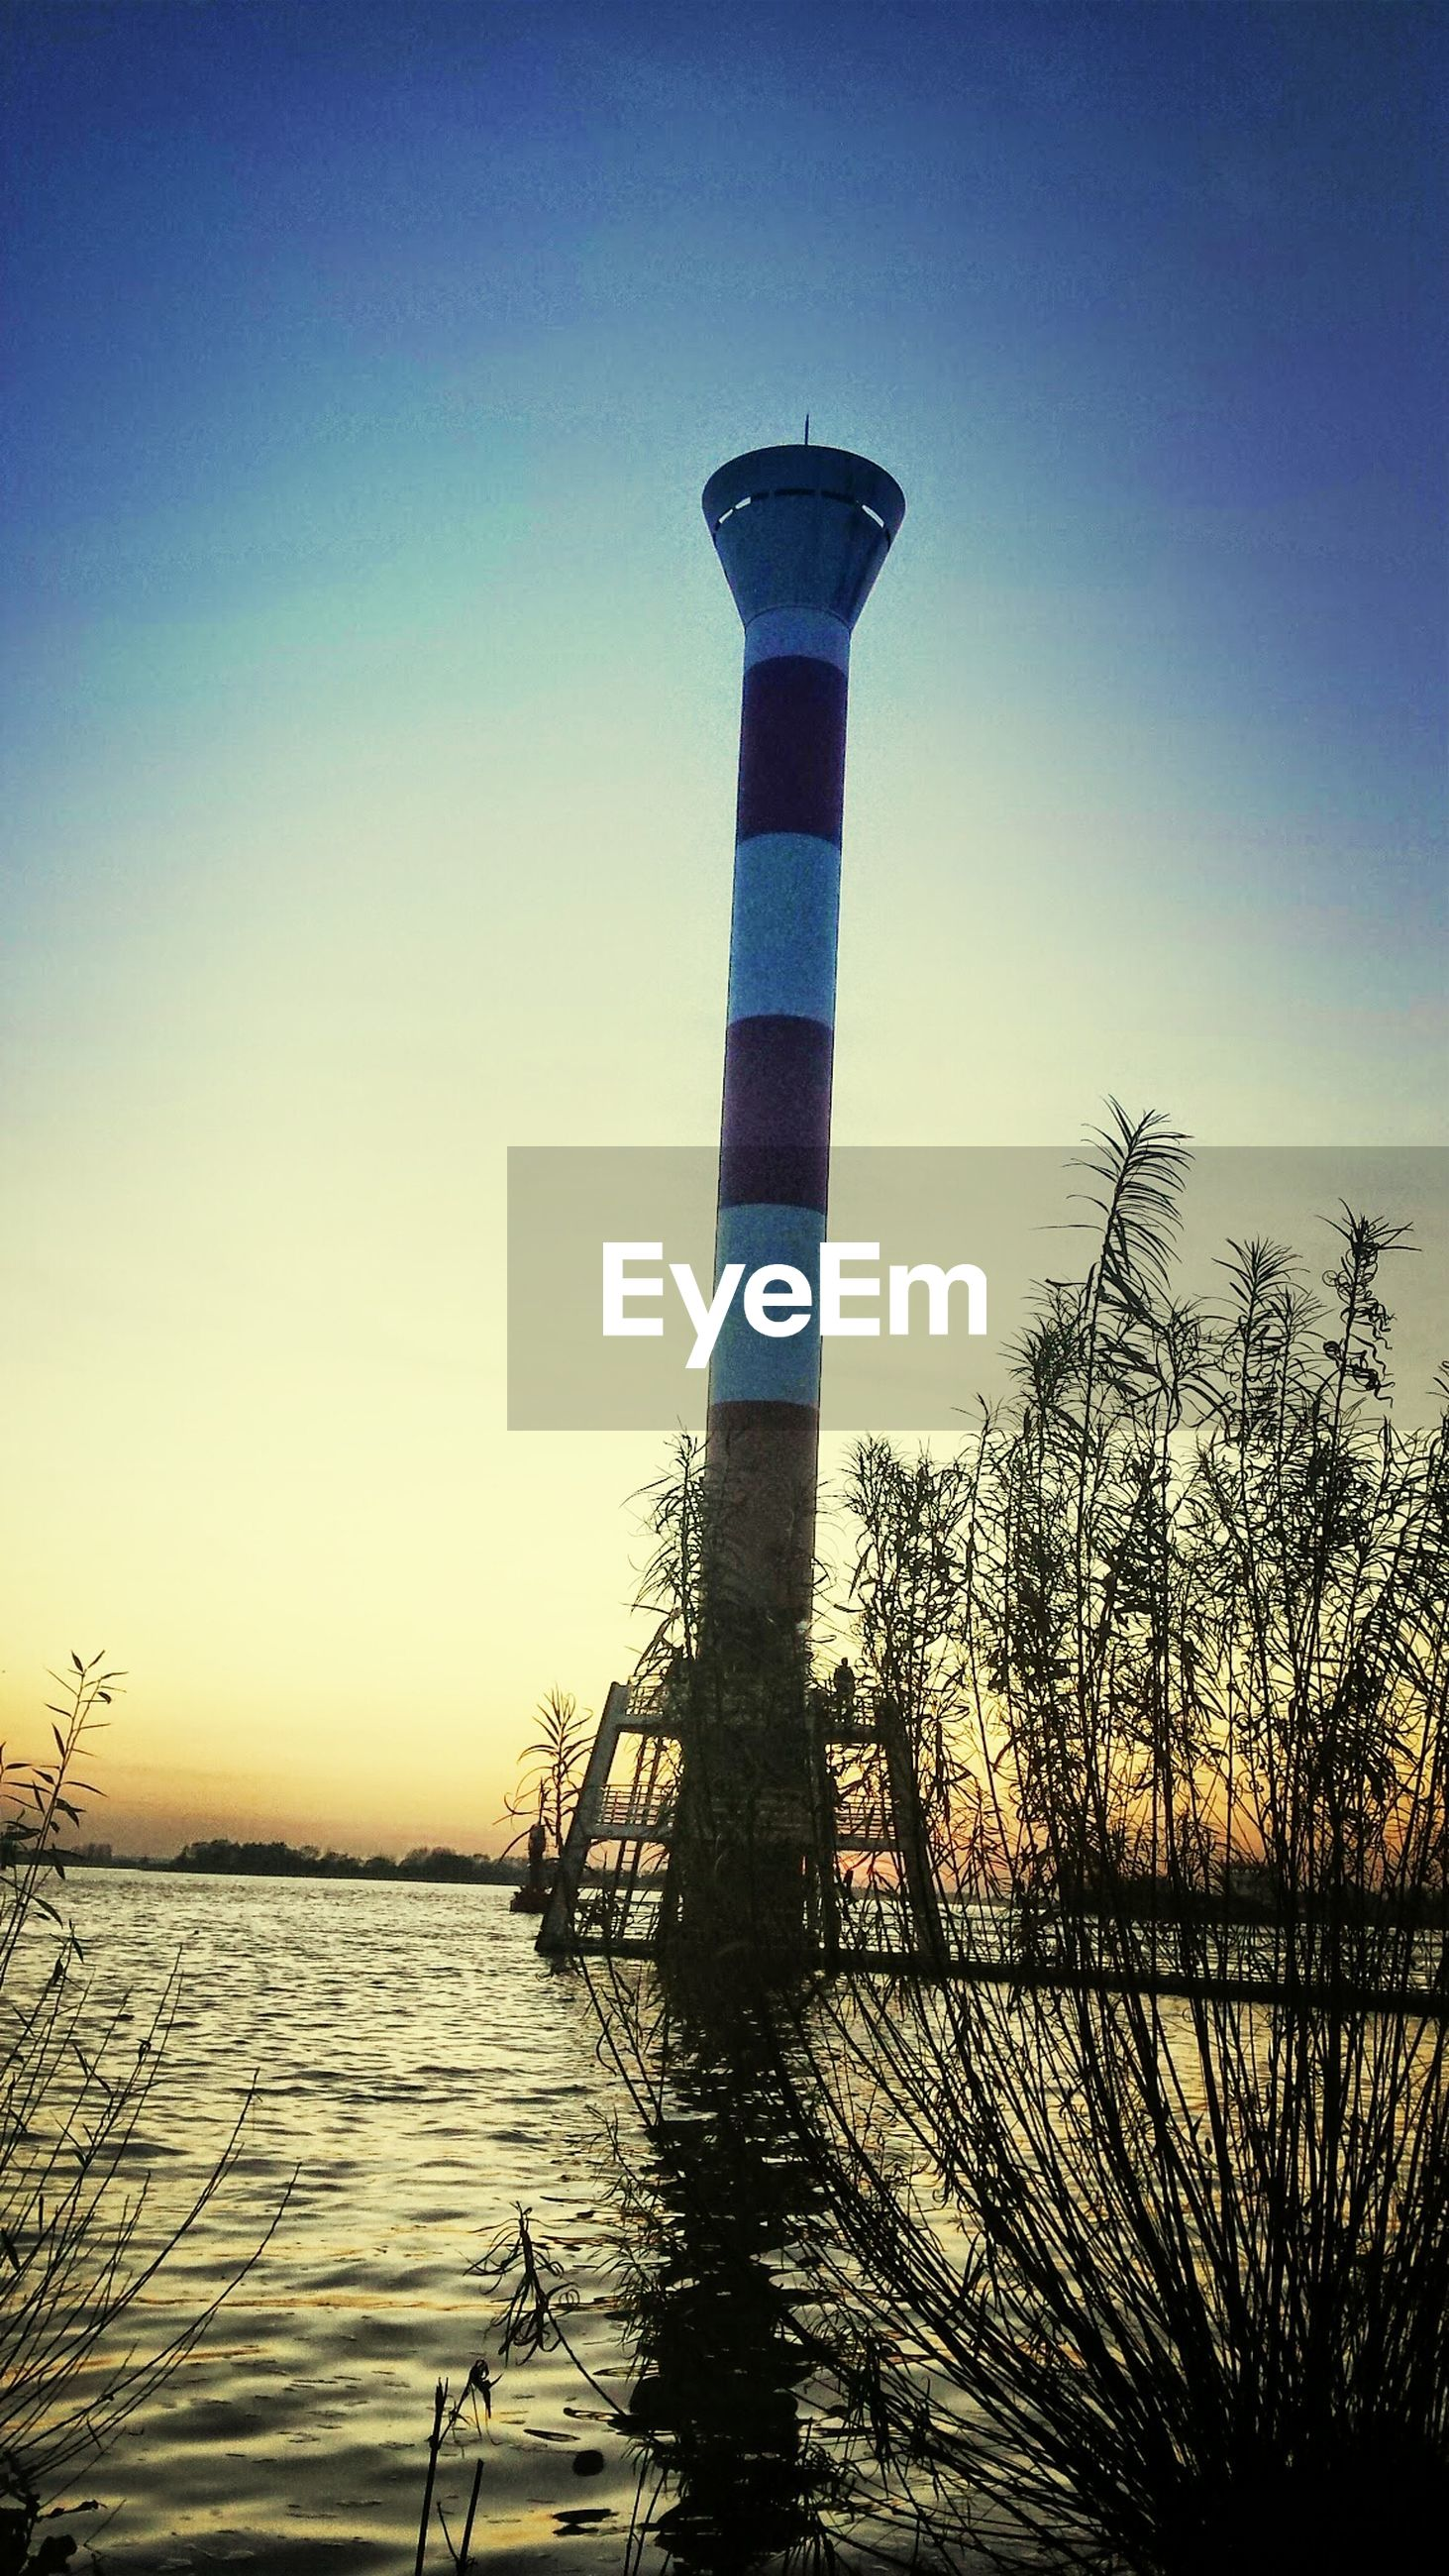 water, sea, clear sky, tranquility, sunset, blue, tranquil scene, nature, protection, horizon over water, scenics, beauty in nature, safety, copy space, guidance, lighthouse, sky, built structure, security, no people